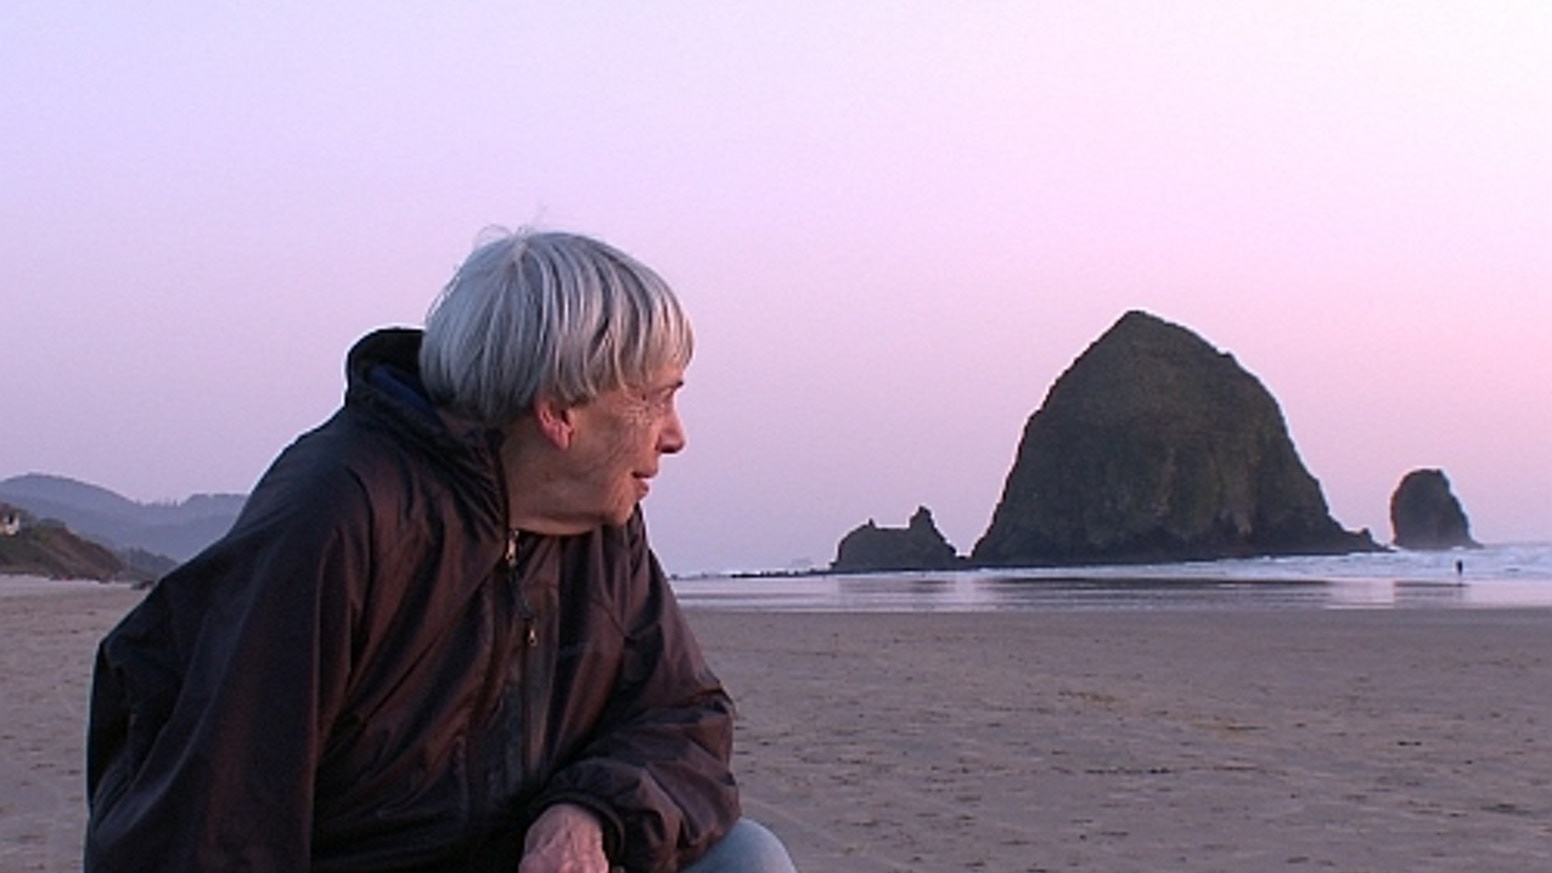 Worlds of Ursula K. Le Guin, a feature documentary, explores the remarkable life and legacy of the groundbreaking science fiction and fantasy author.